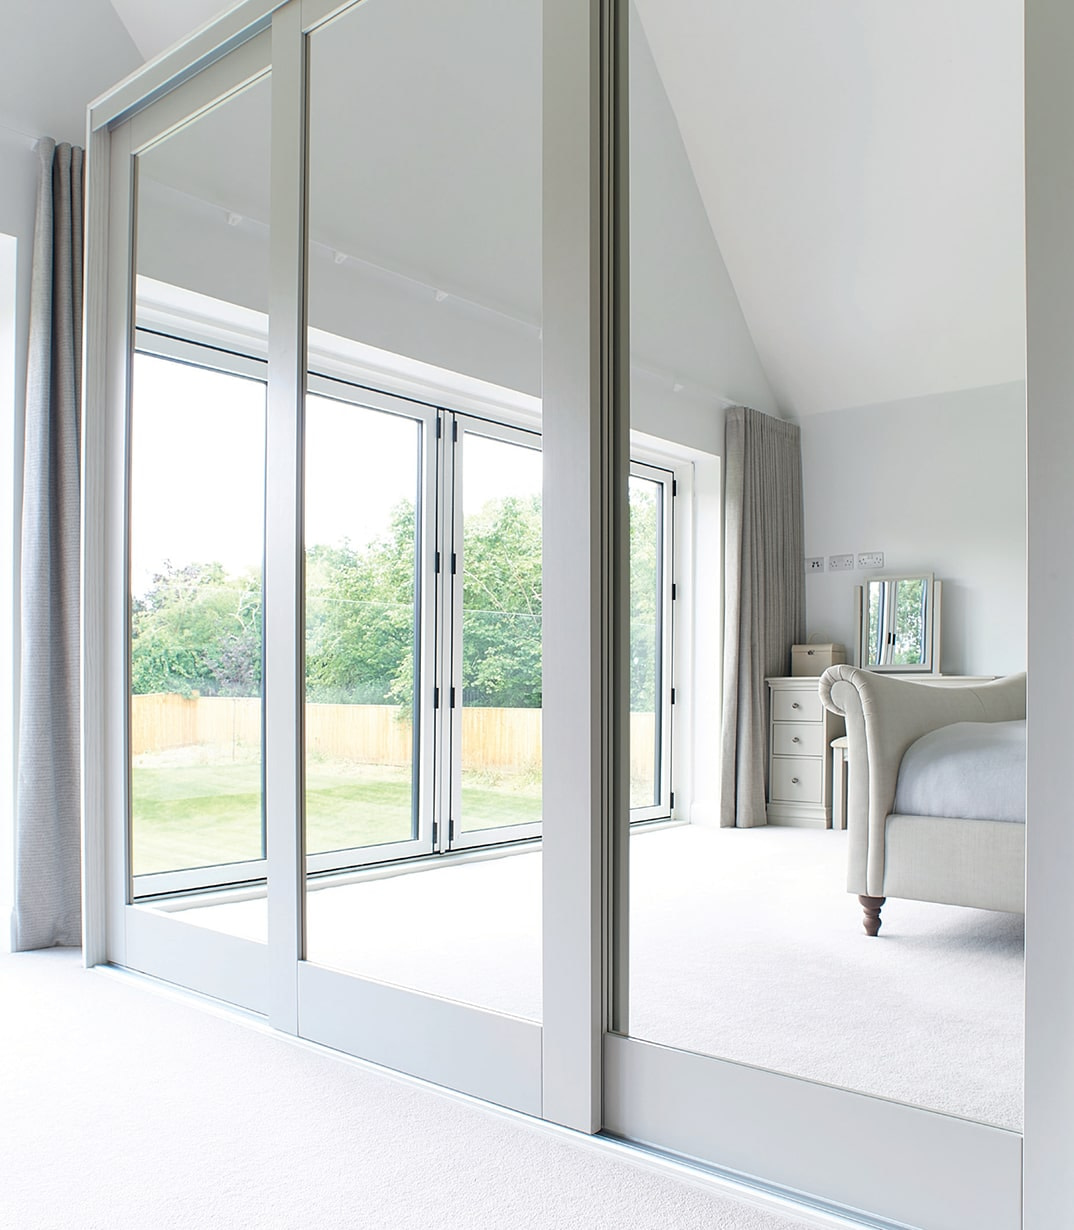 Luxury commercial wardrobes by Draks